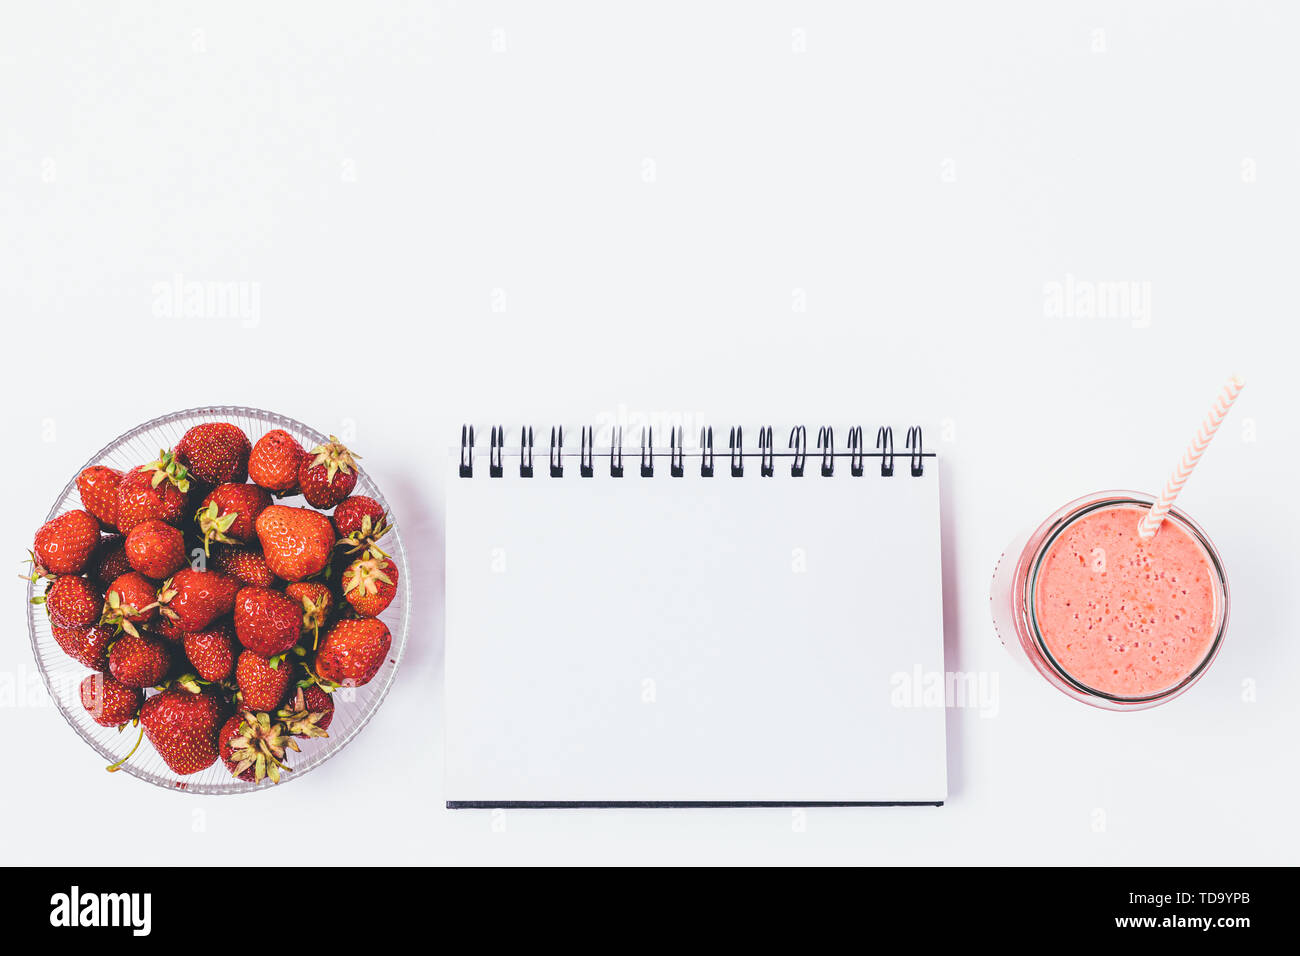 Bowl of fresh strawberries, clean notepad sheet and smoothie with straw on white background, flat lay composition with copy space. - Stock Image